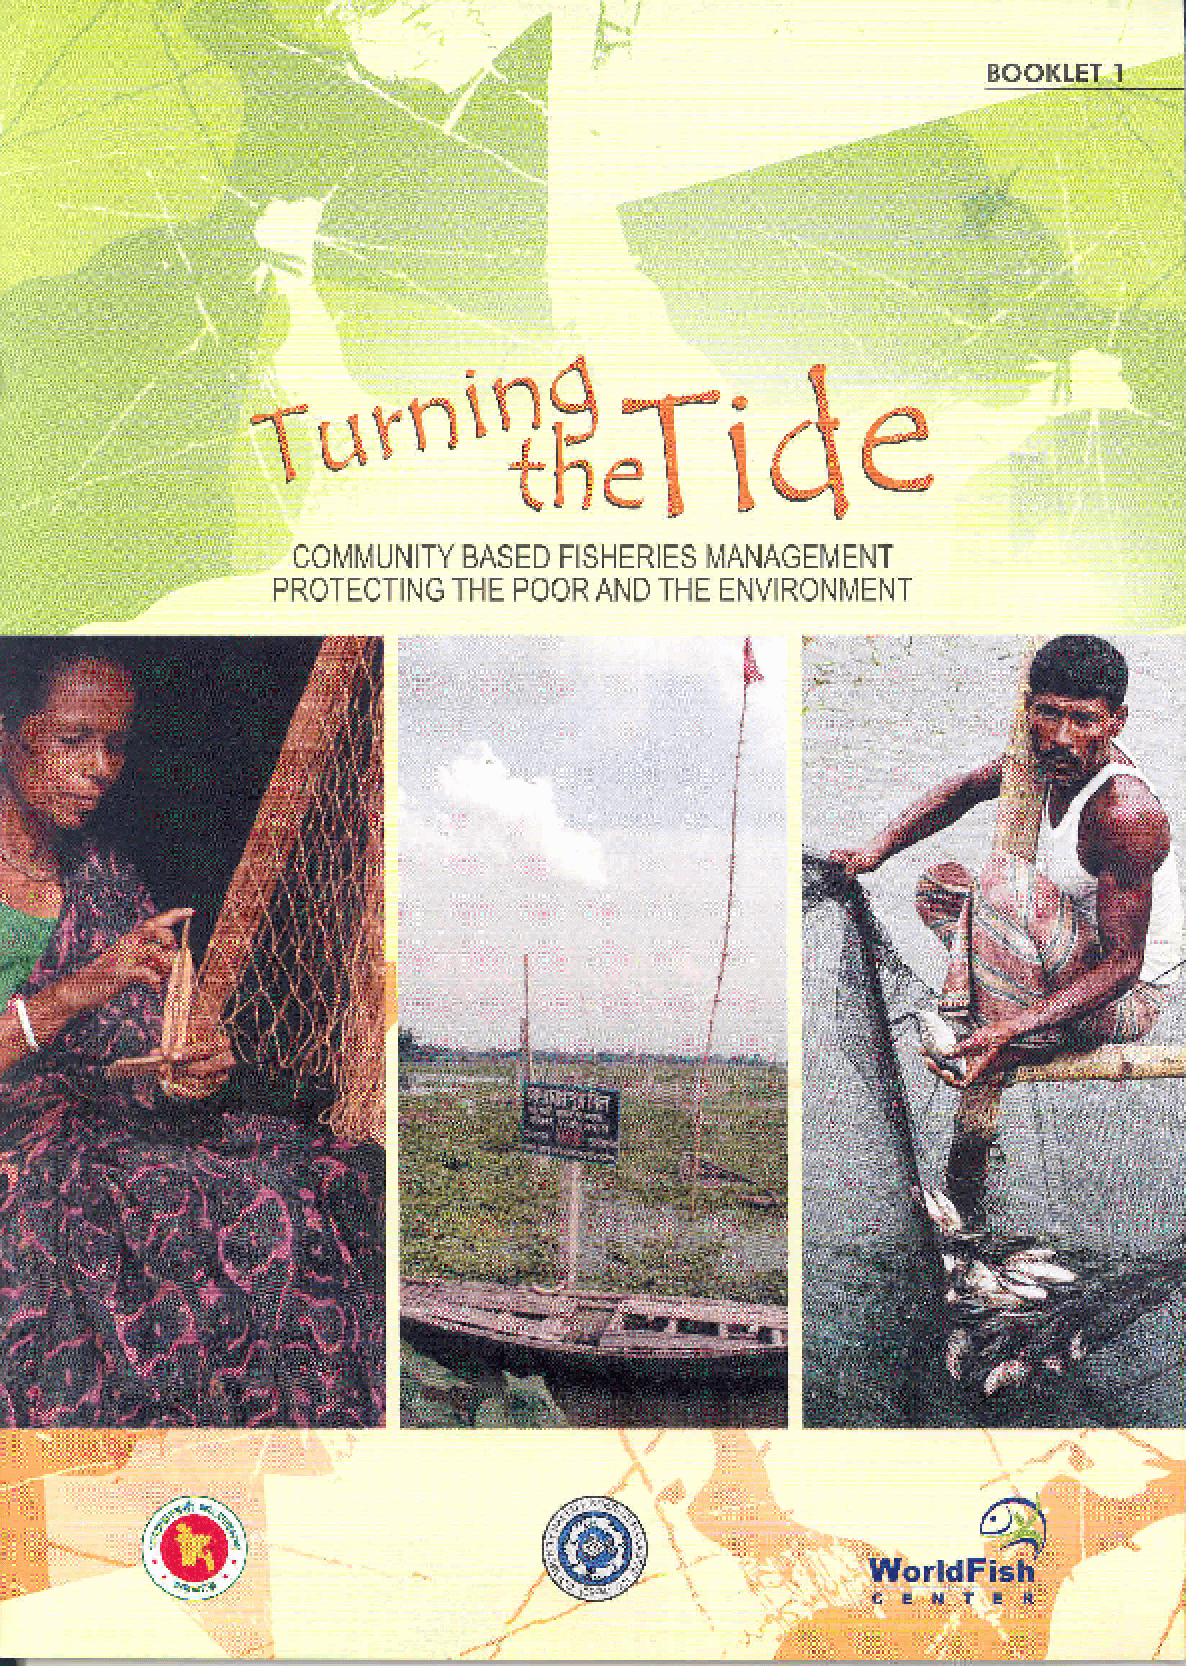 Turning the Tide: Community Based Fisheries Management Protecting the Poor and the Environment